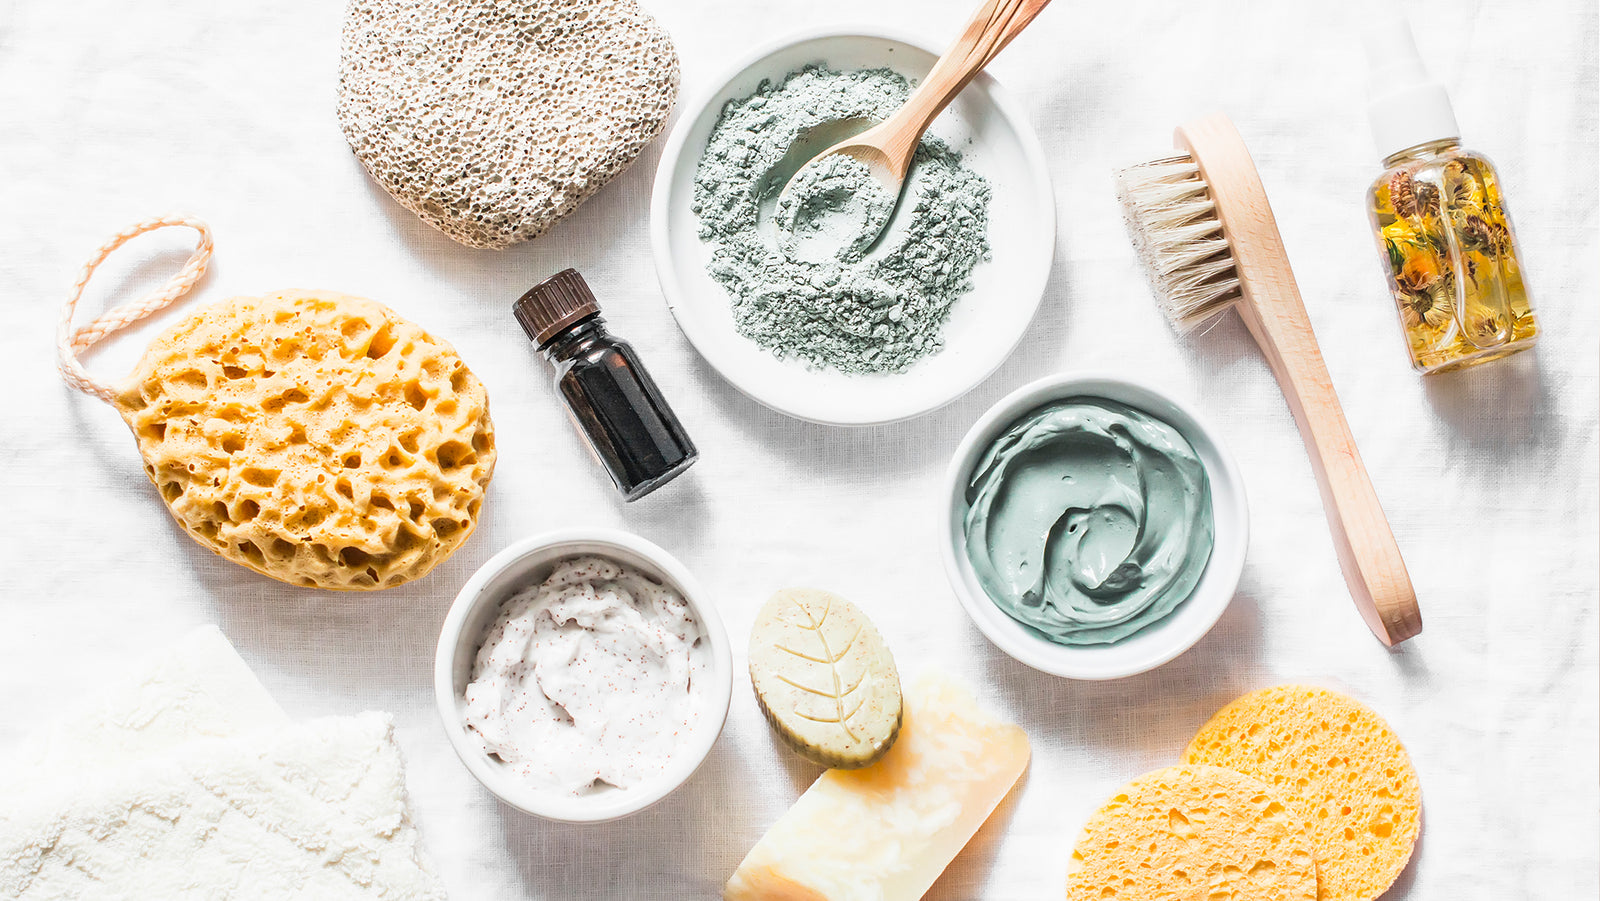 DIY Skincare Recipes